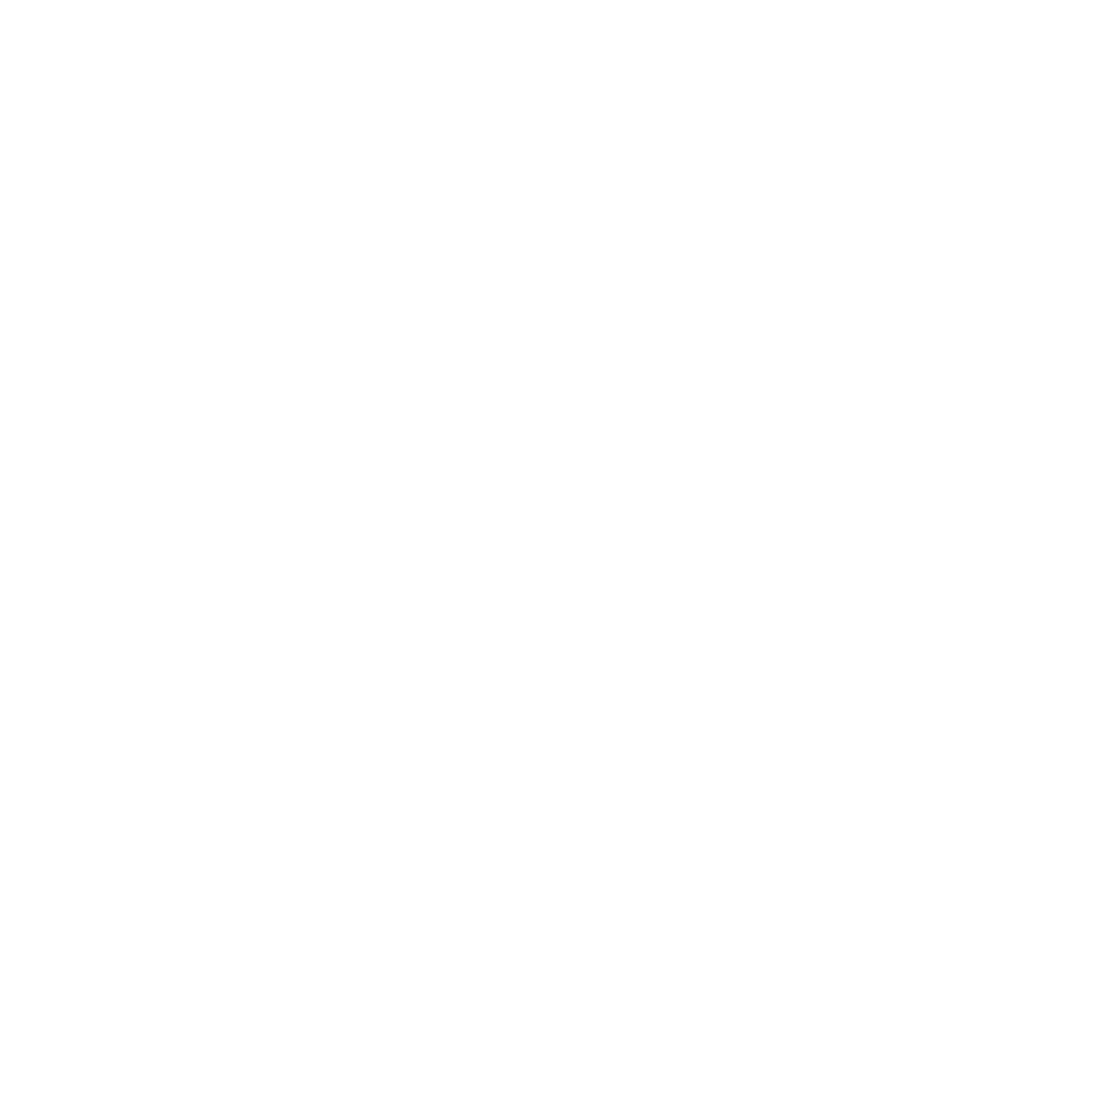 Gamut Theatre Group